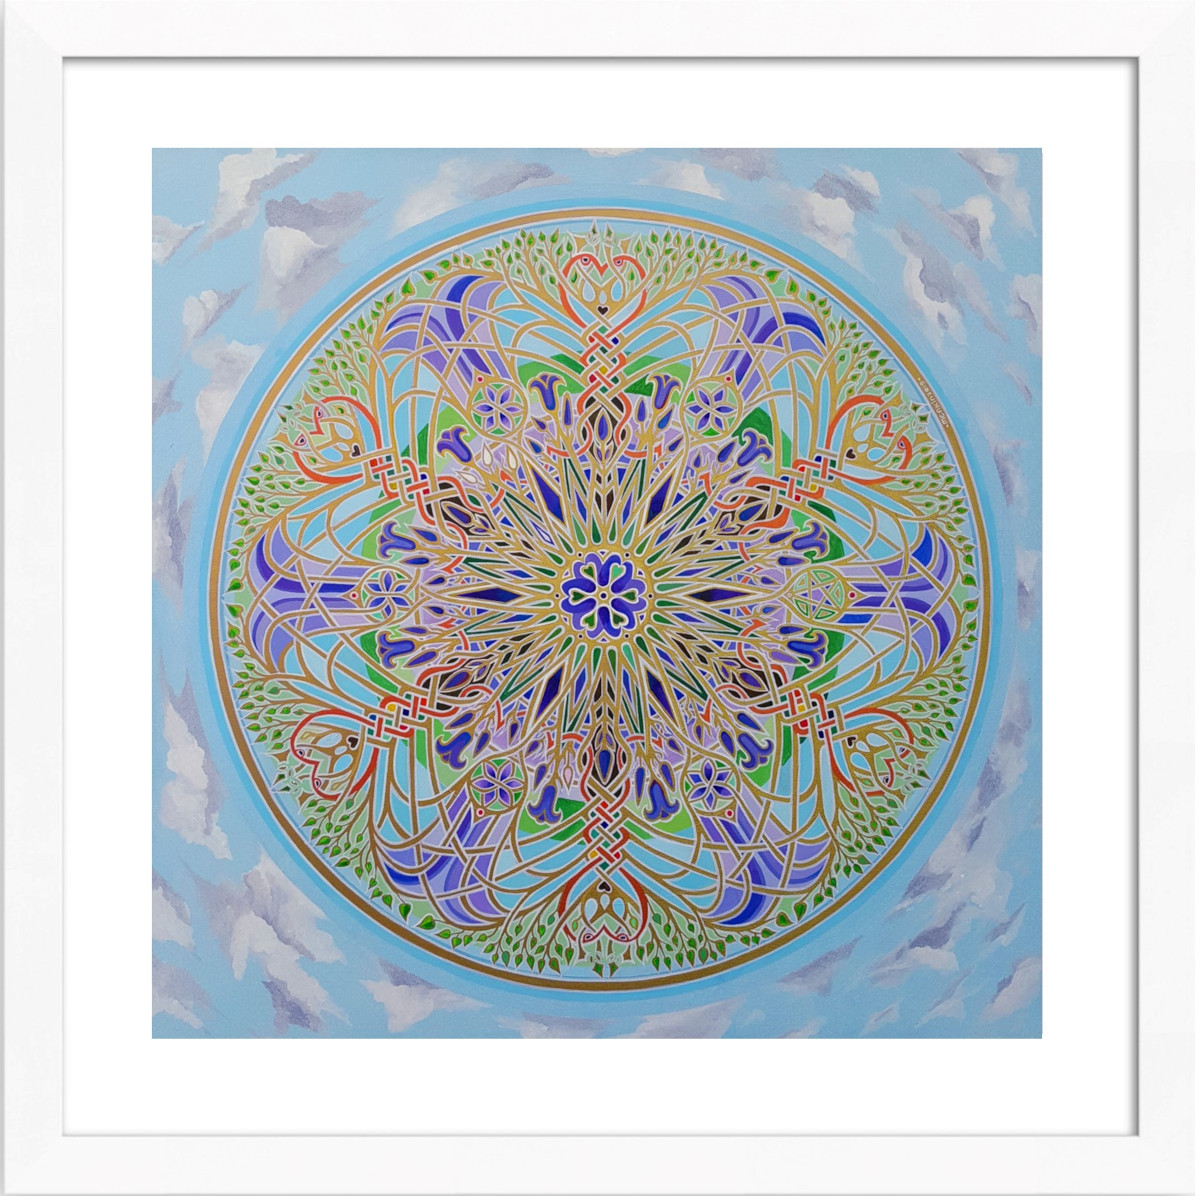 The Bluebell Mandala